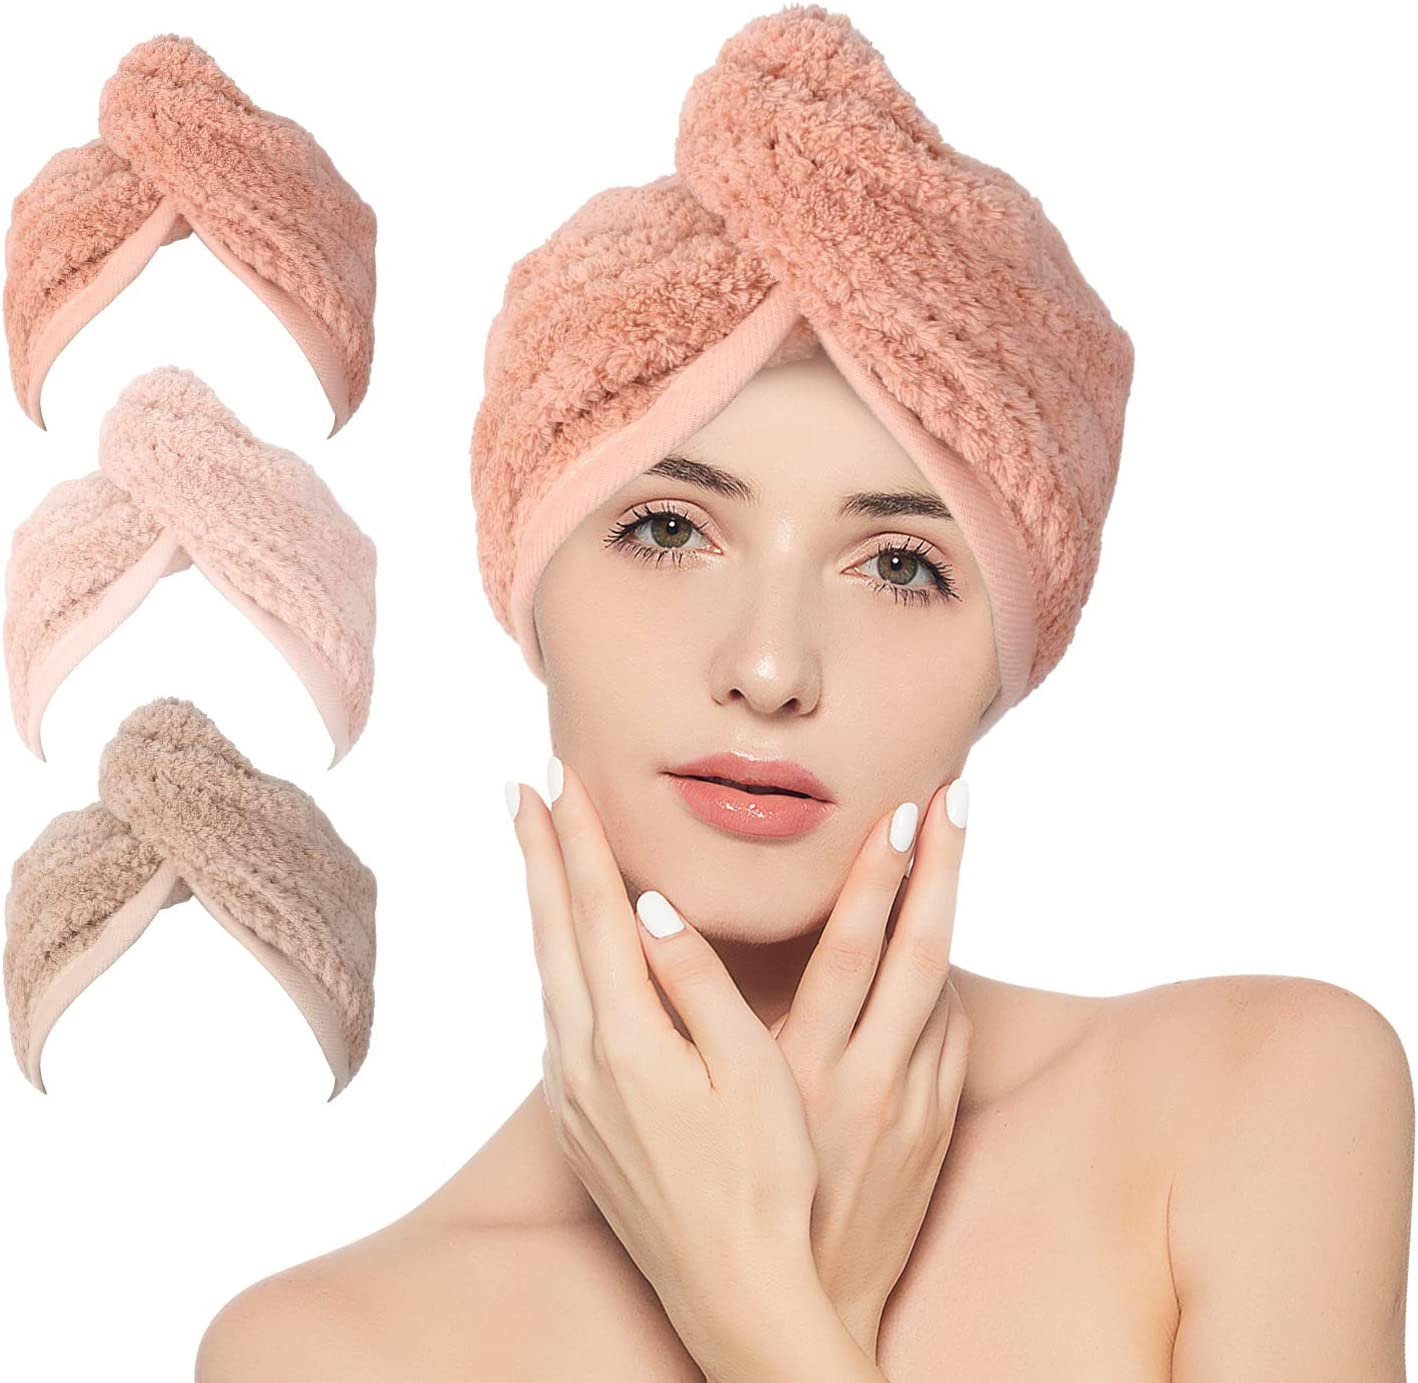 STELLAIRE CHERN 3 Pack Hair Wrap Towel Dry Latest Baltimore Mall item Microfiber Quick